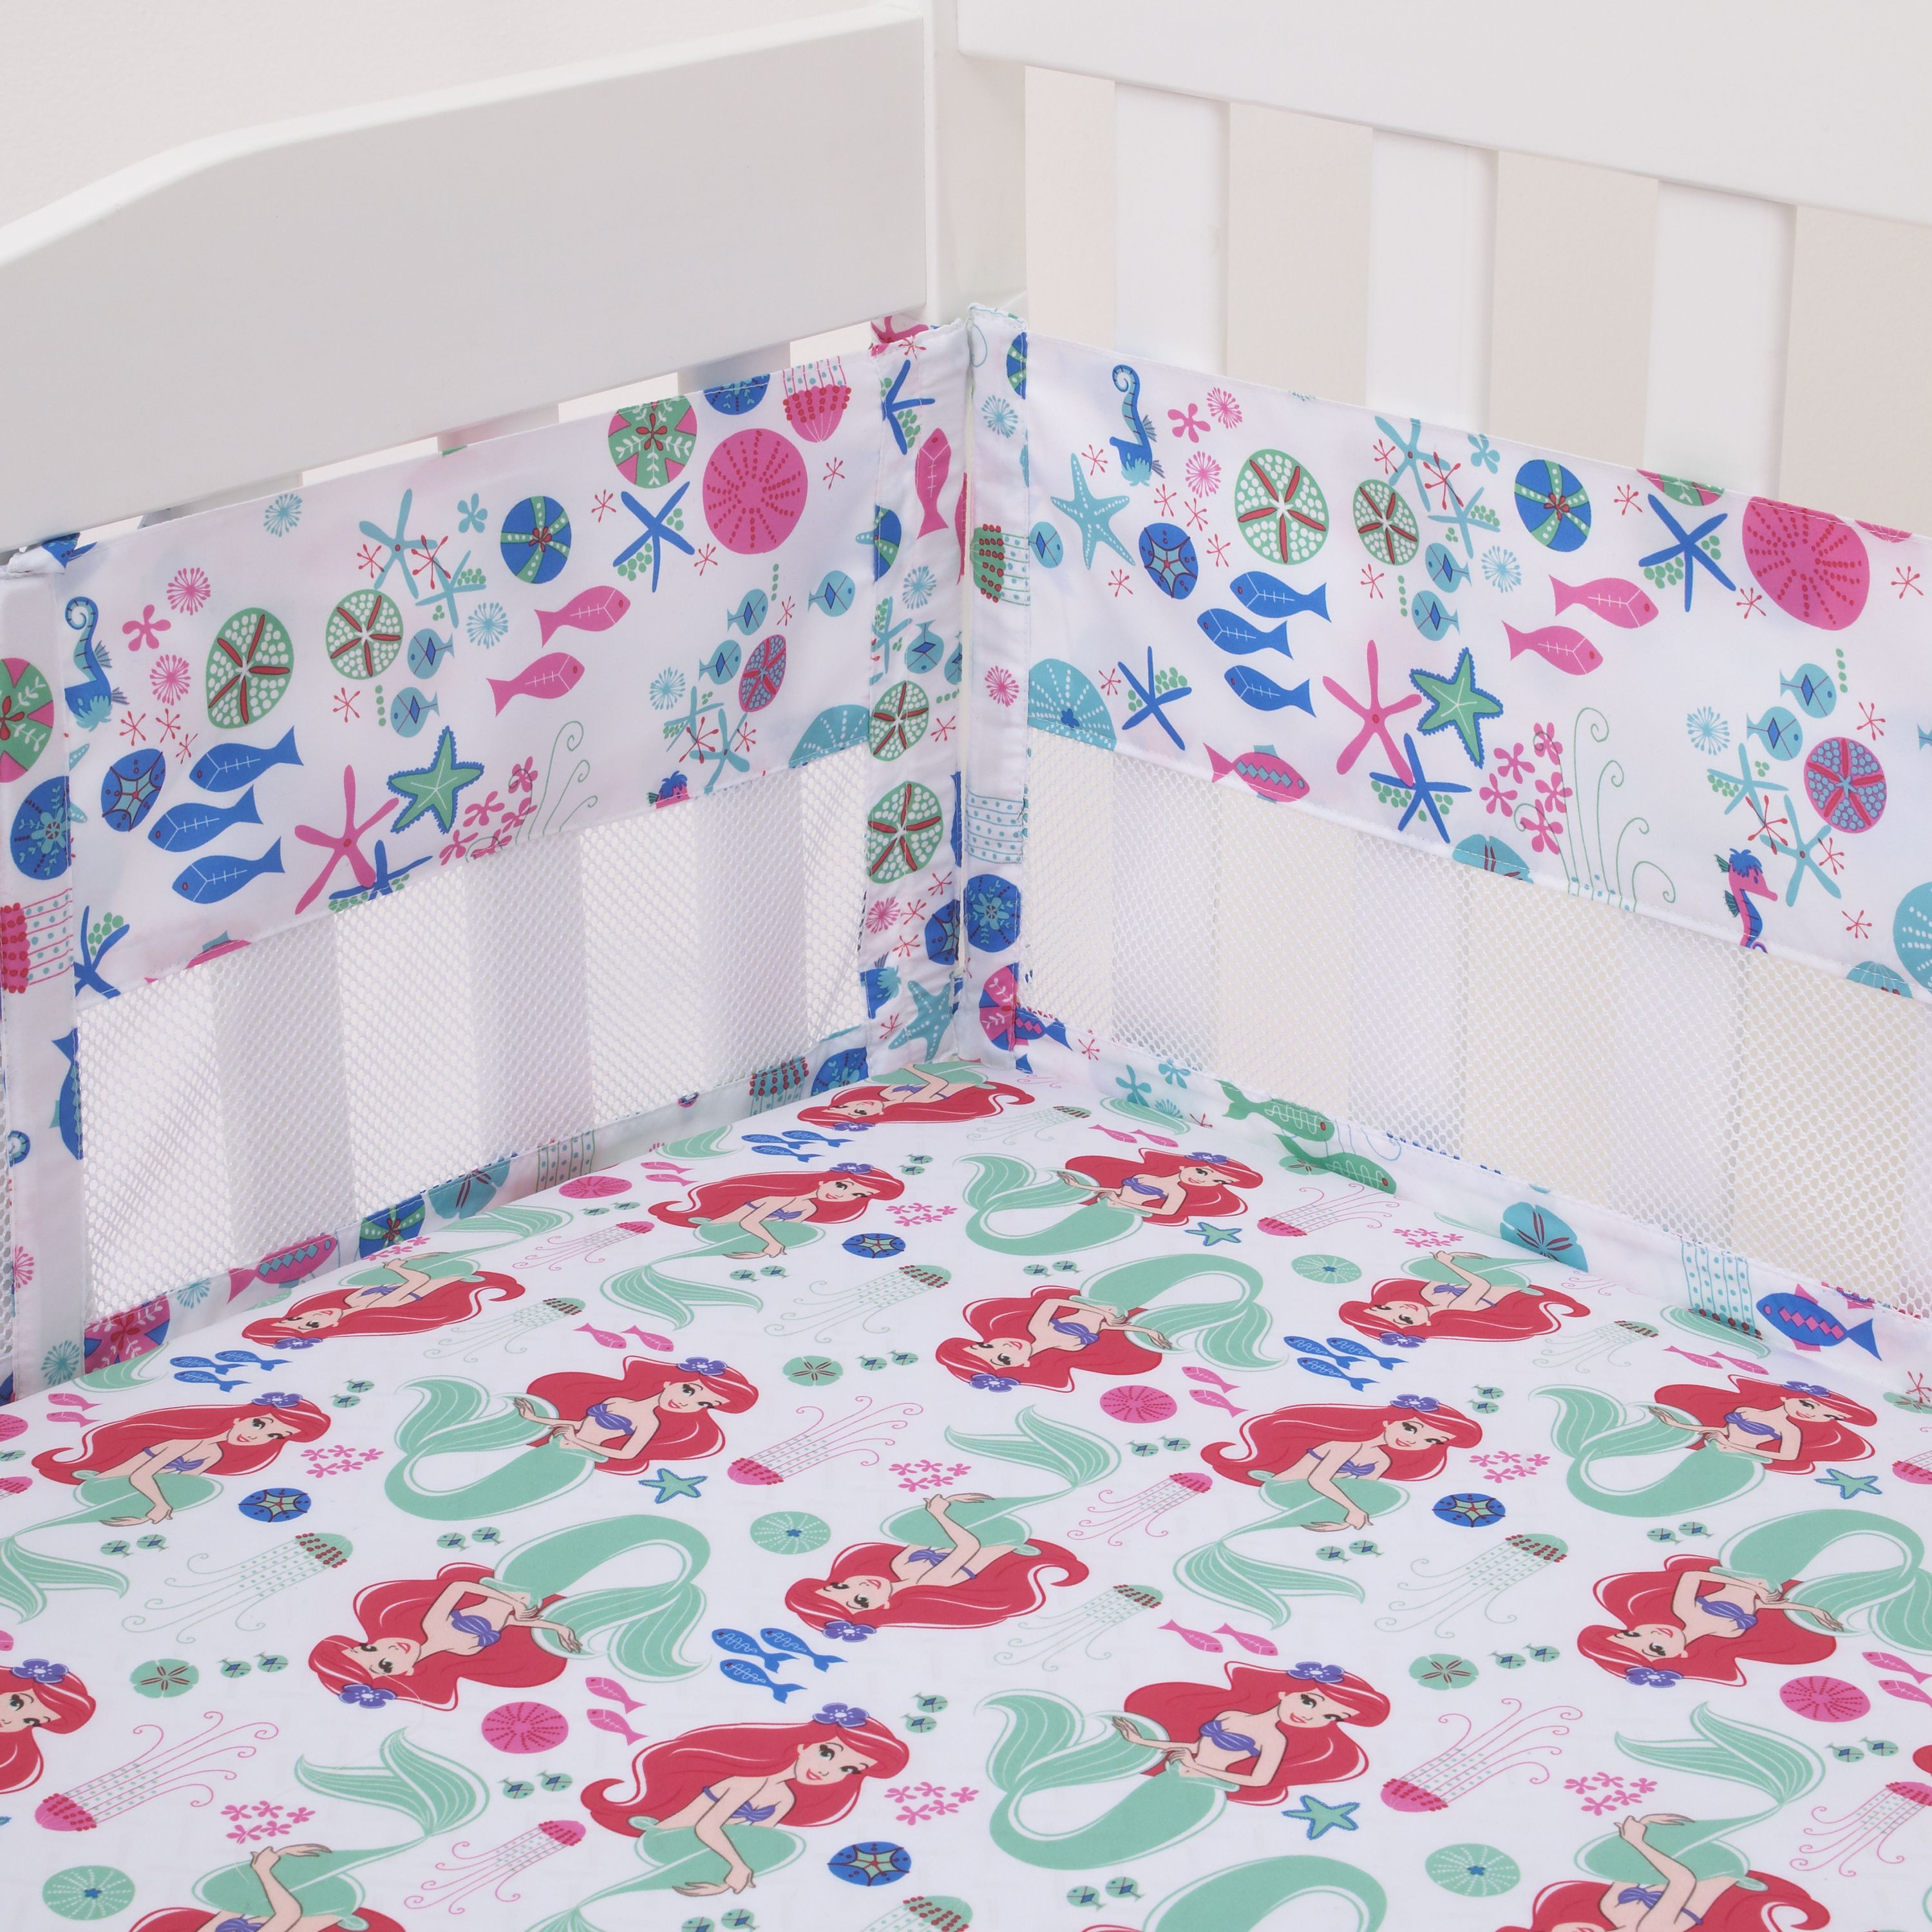 Disney Ariel Ocean Beauty Crib Liner